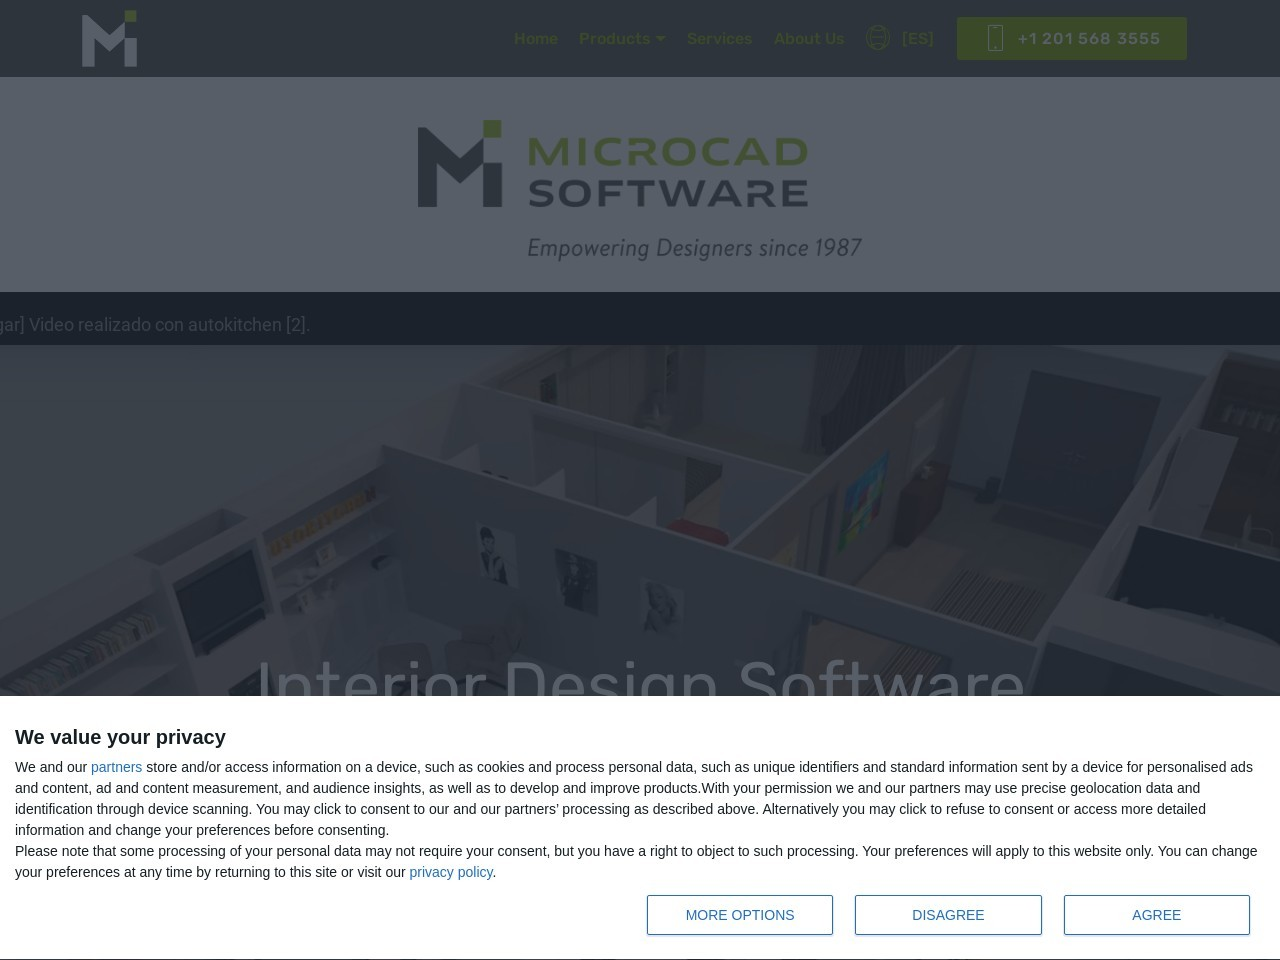 Microcad Software